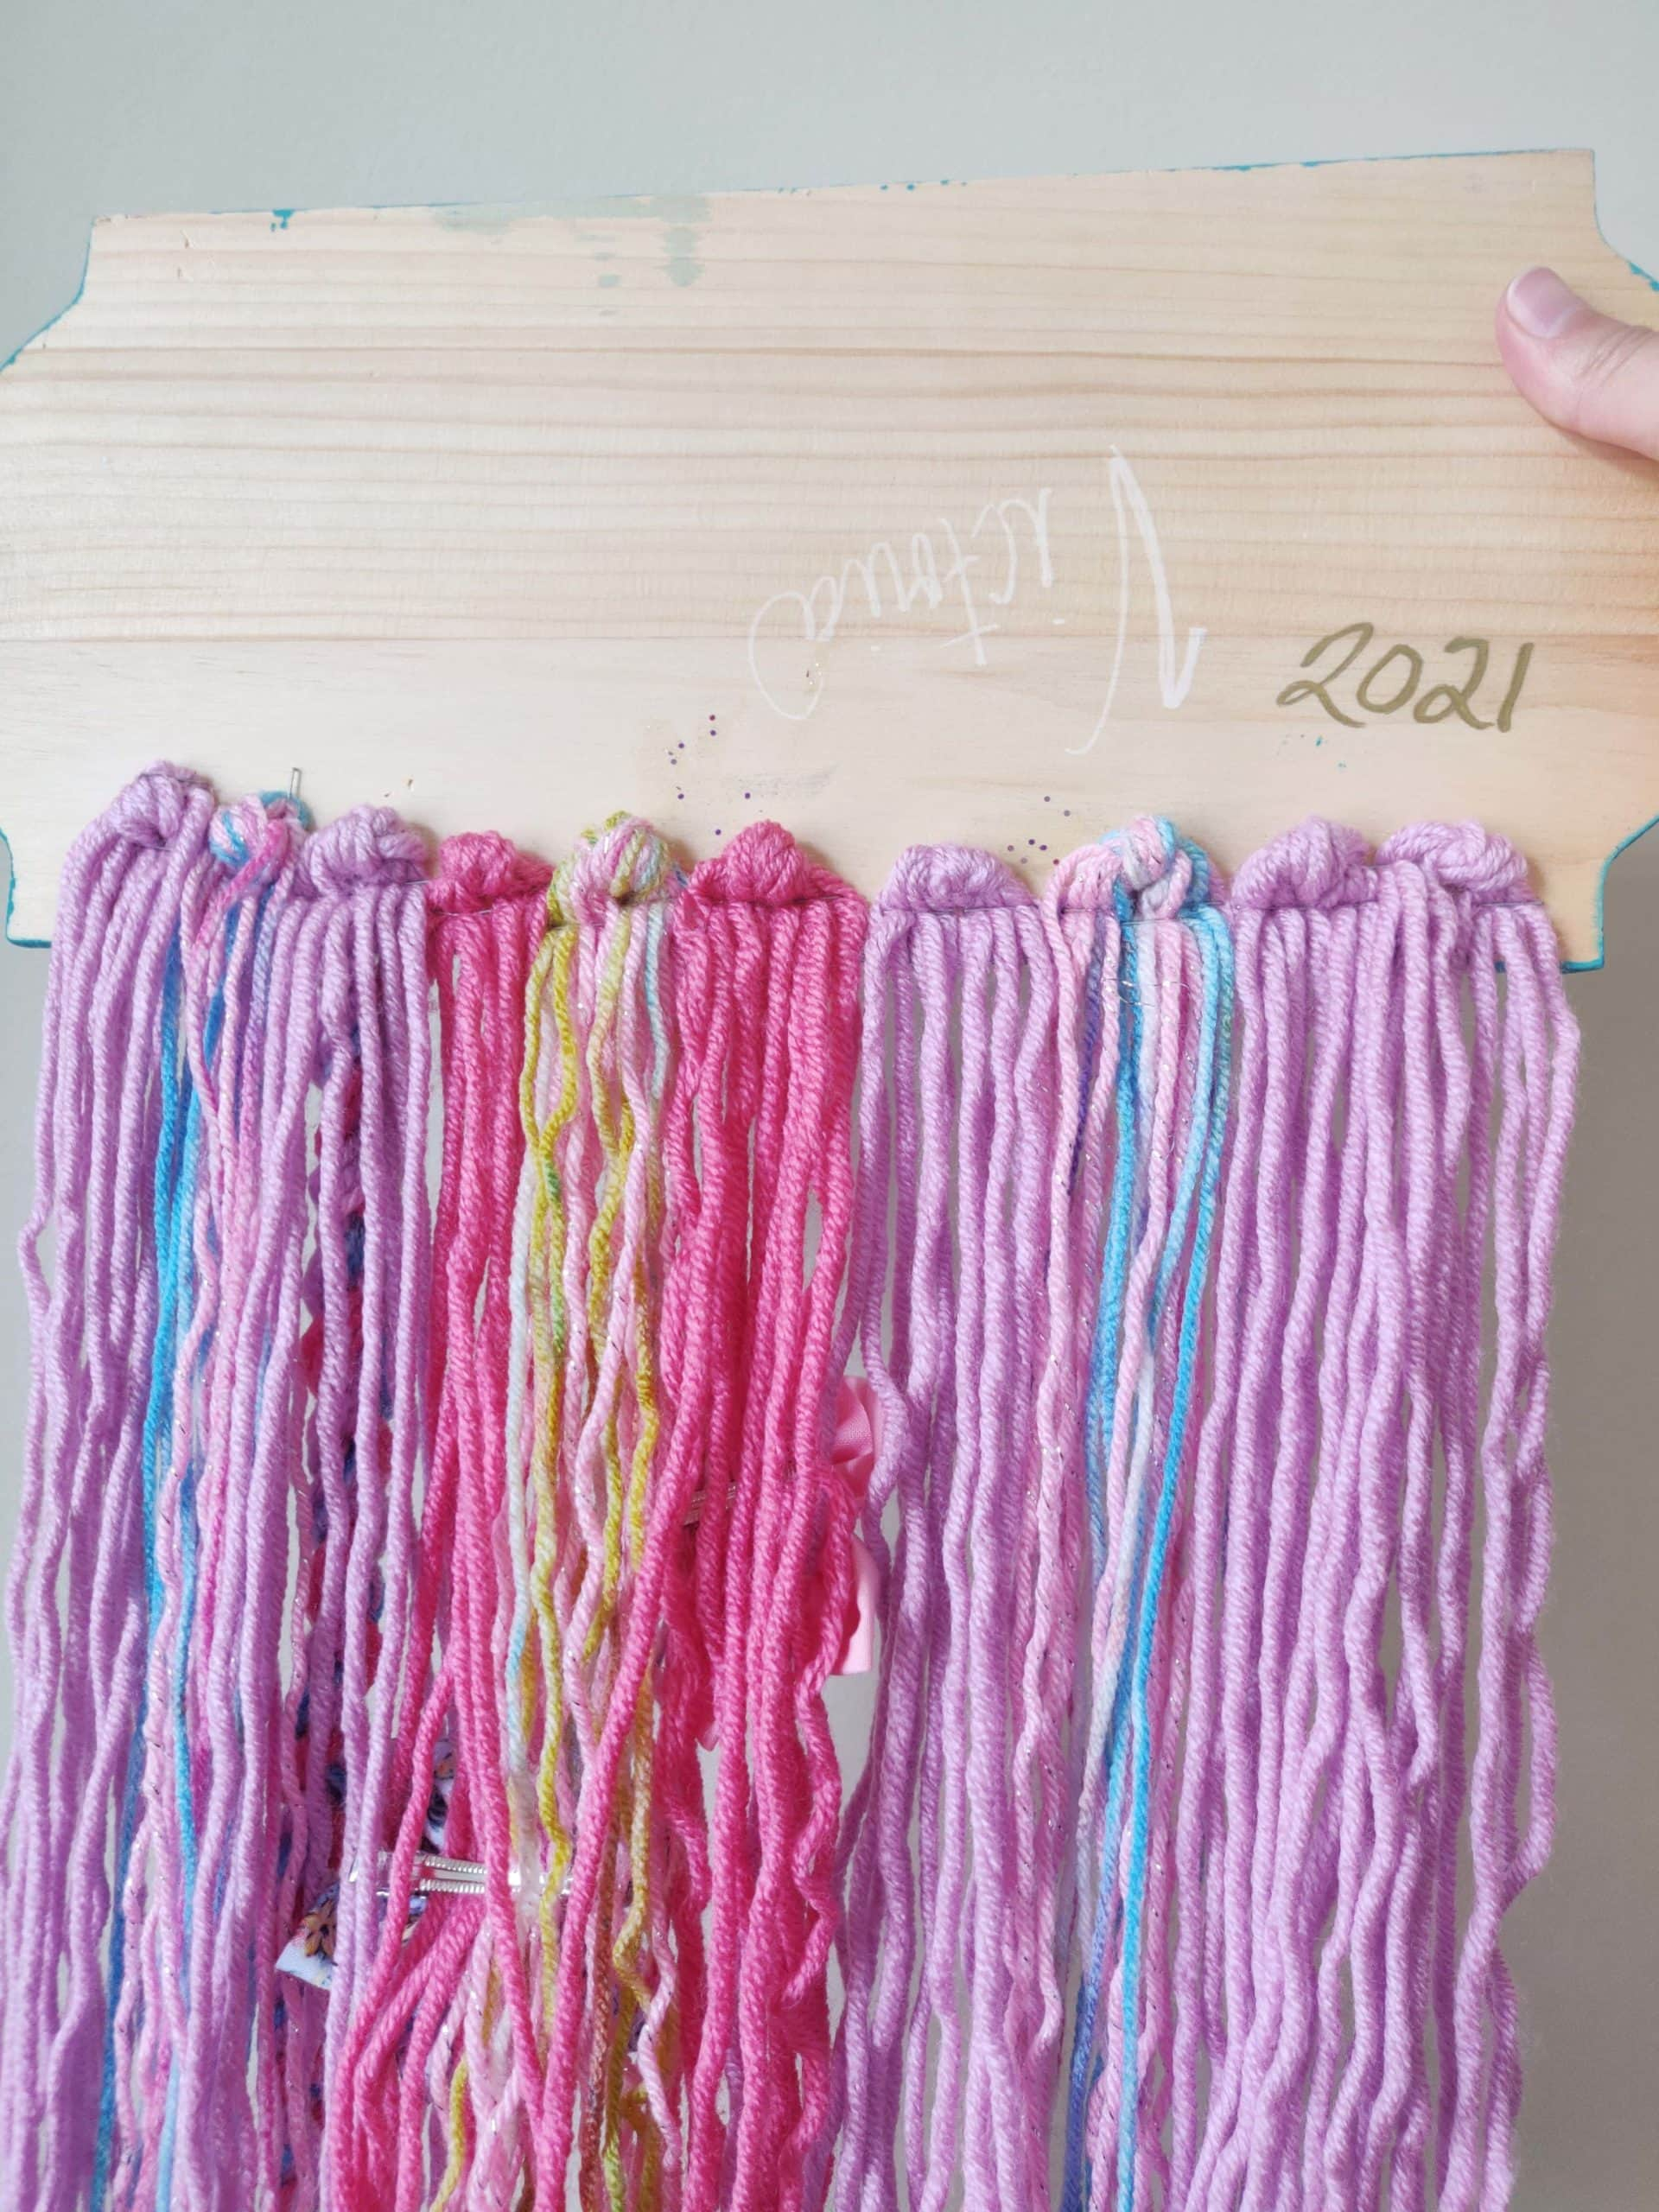 10 sets of 6 strands of pink and purple yarn